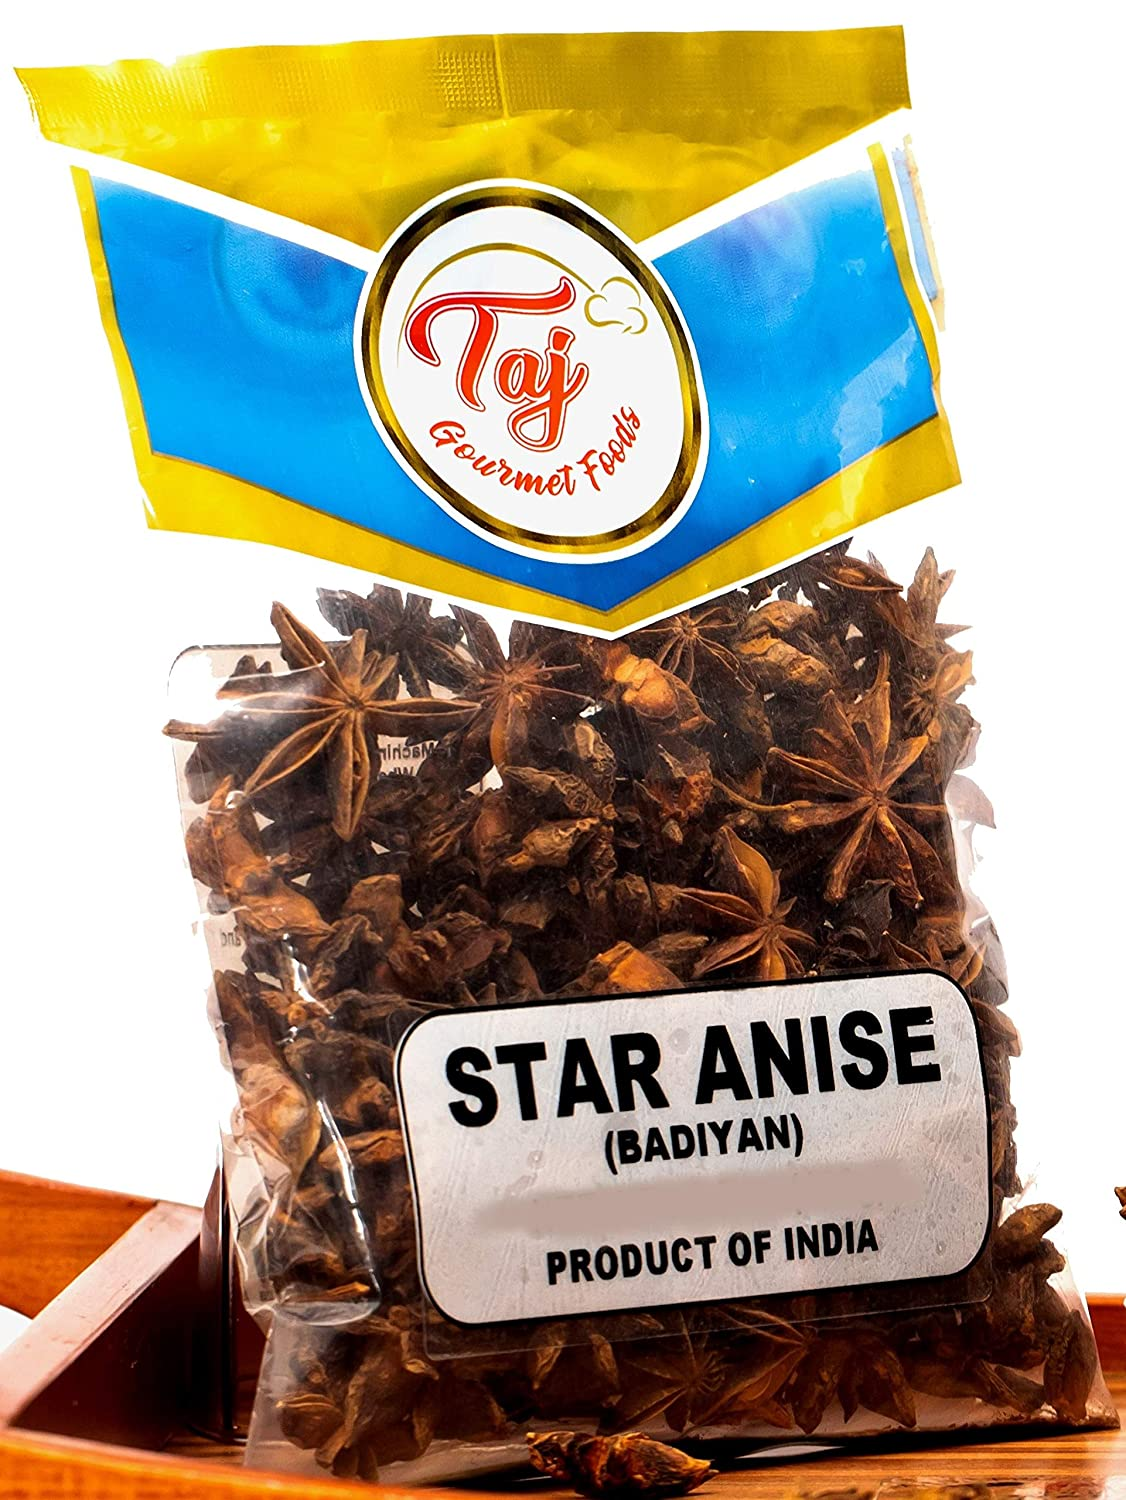 TAJ Premium Indian Star Anise Seeds (Whole Pods), Badian Khatai, (14 Ounce)